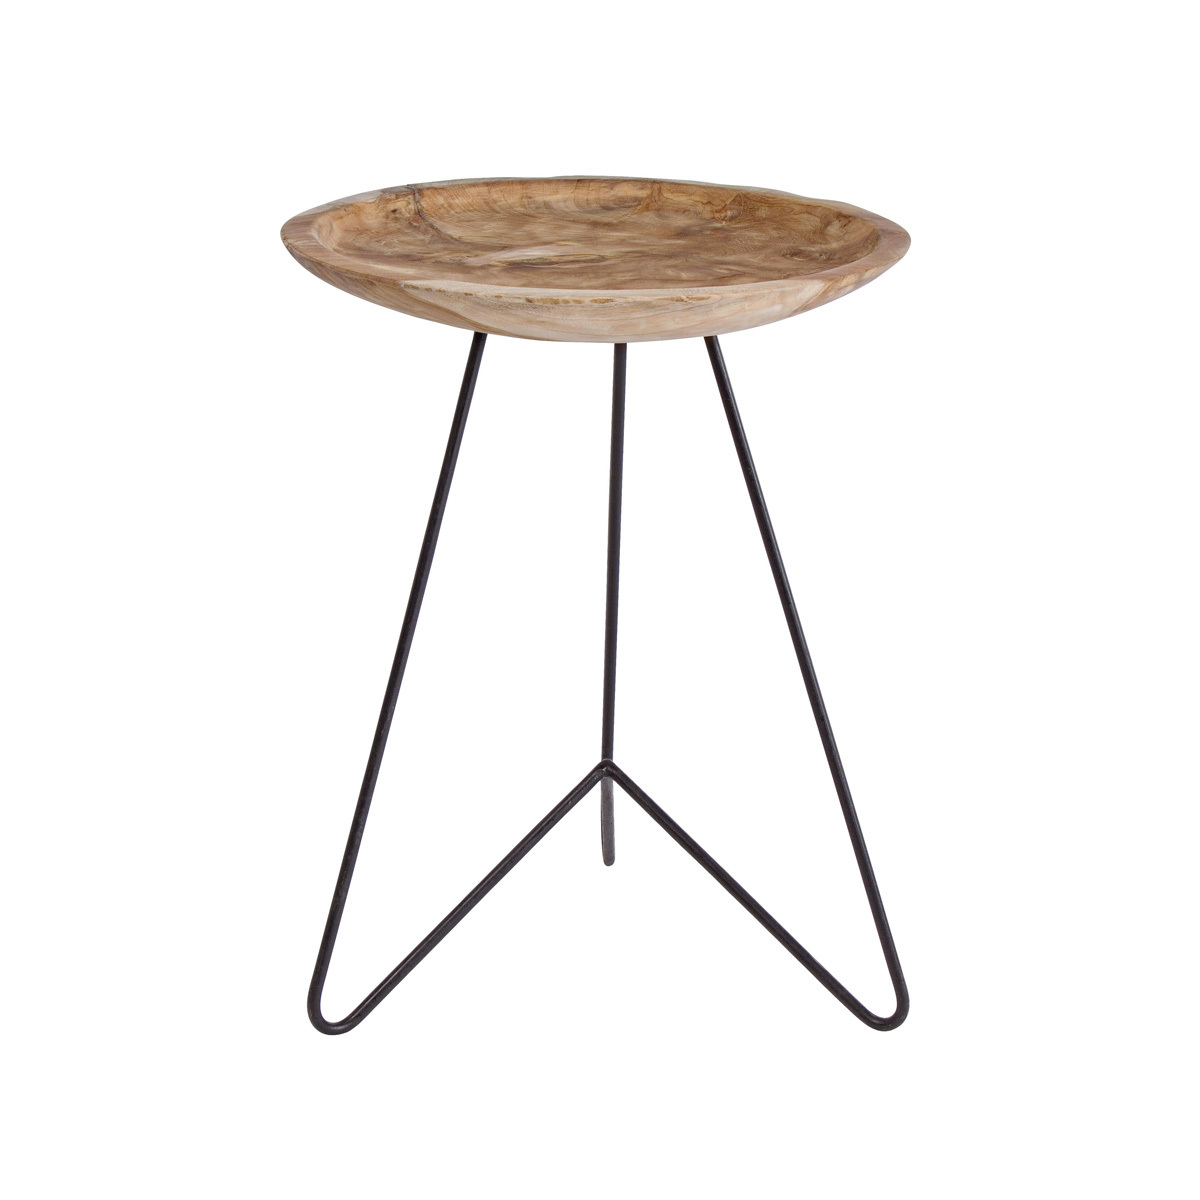 Photos 1: Bizzotto Wood and iron coffee table d. 40 0680424